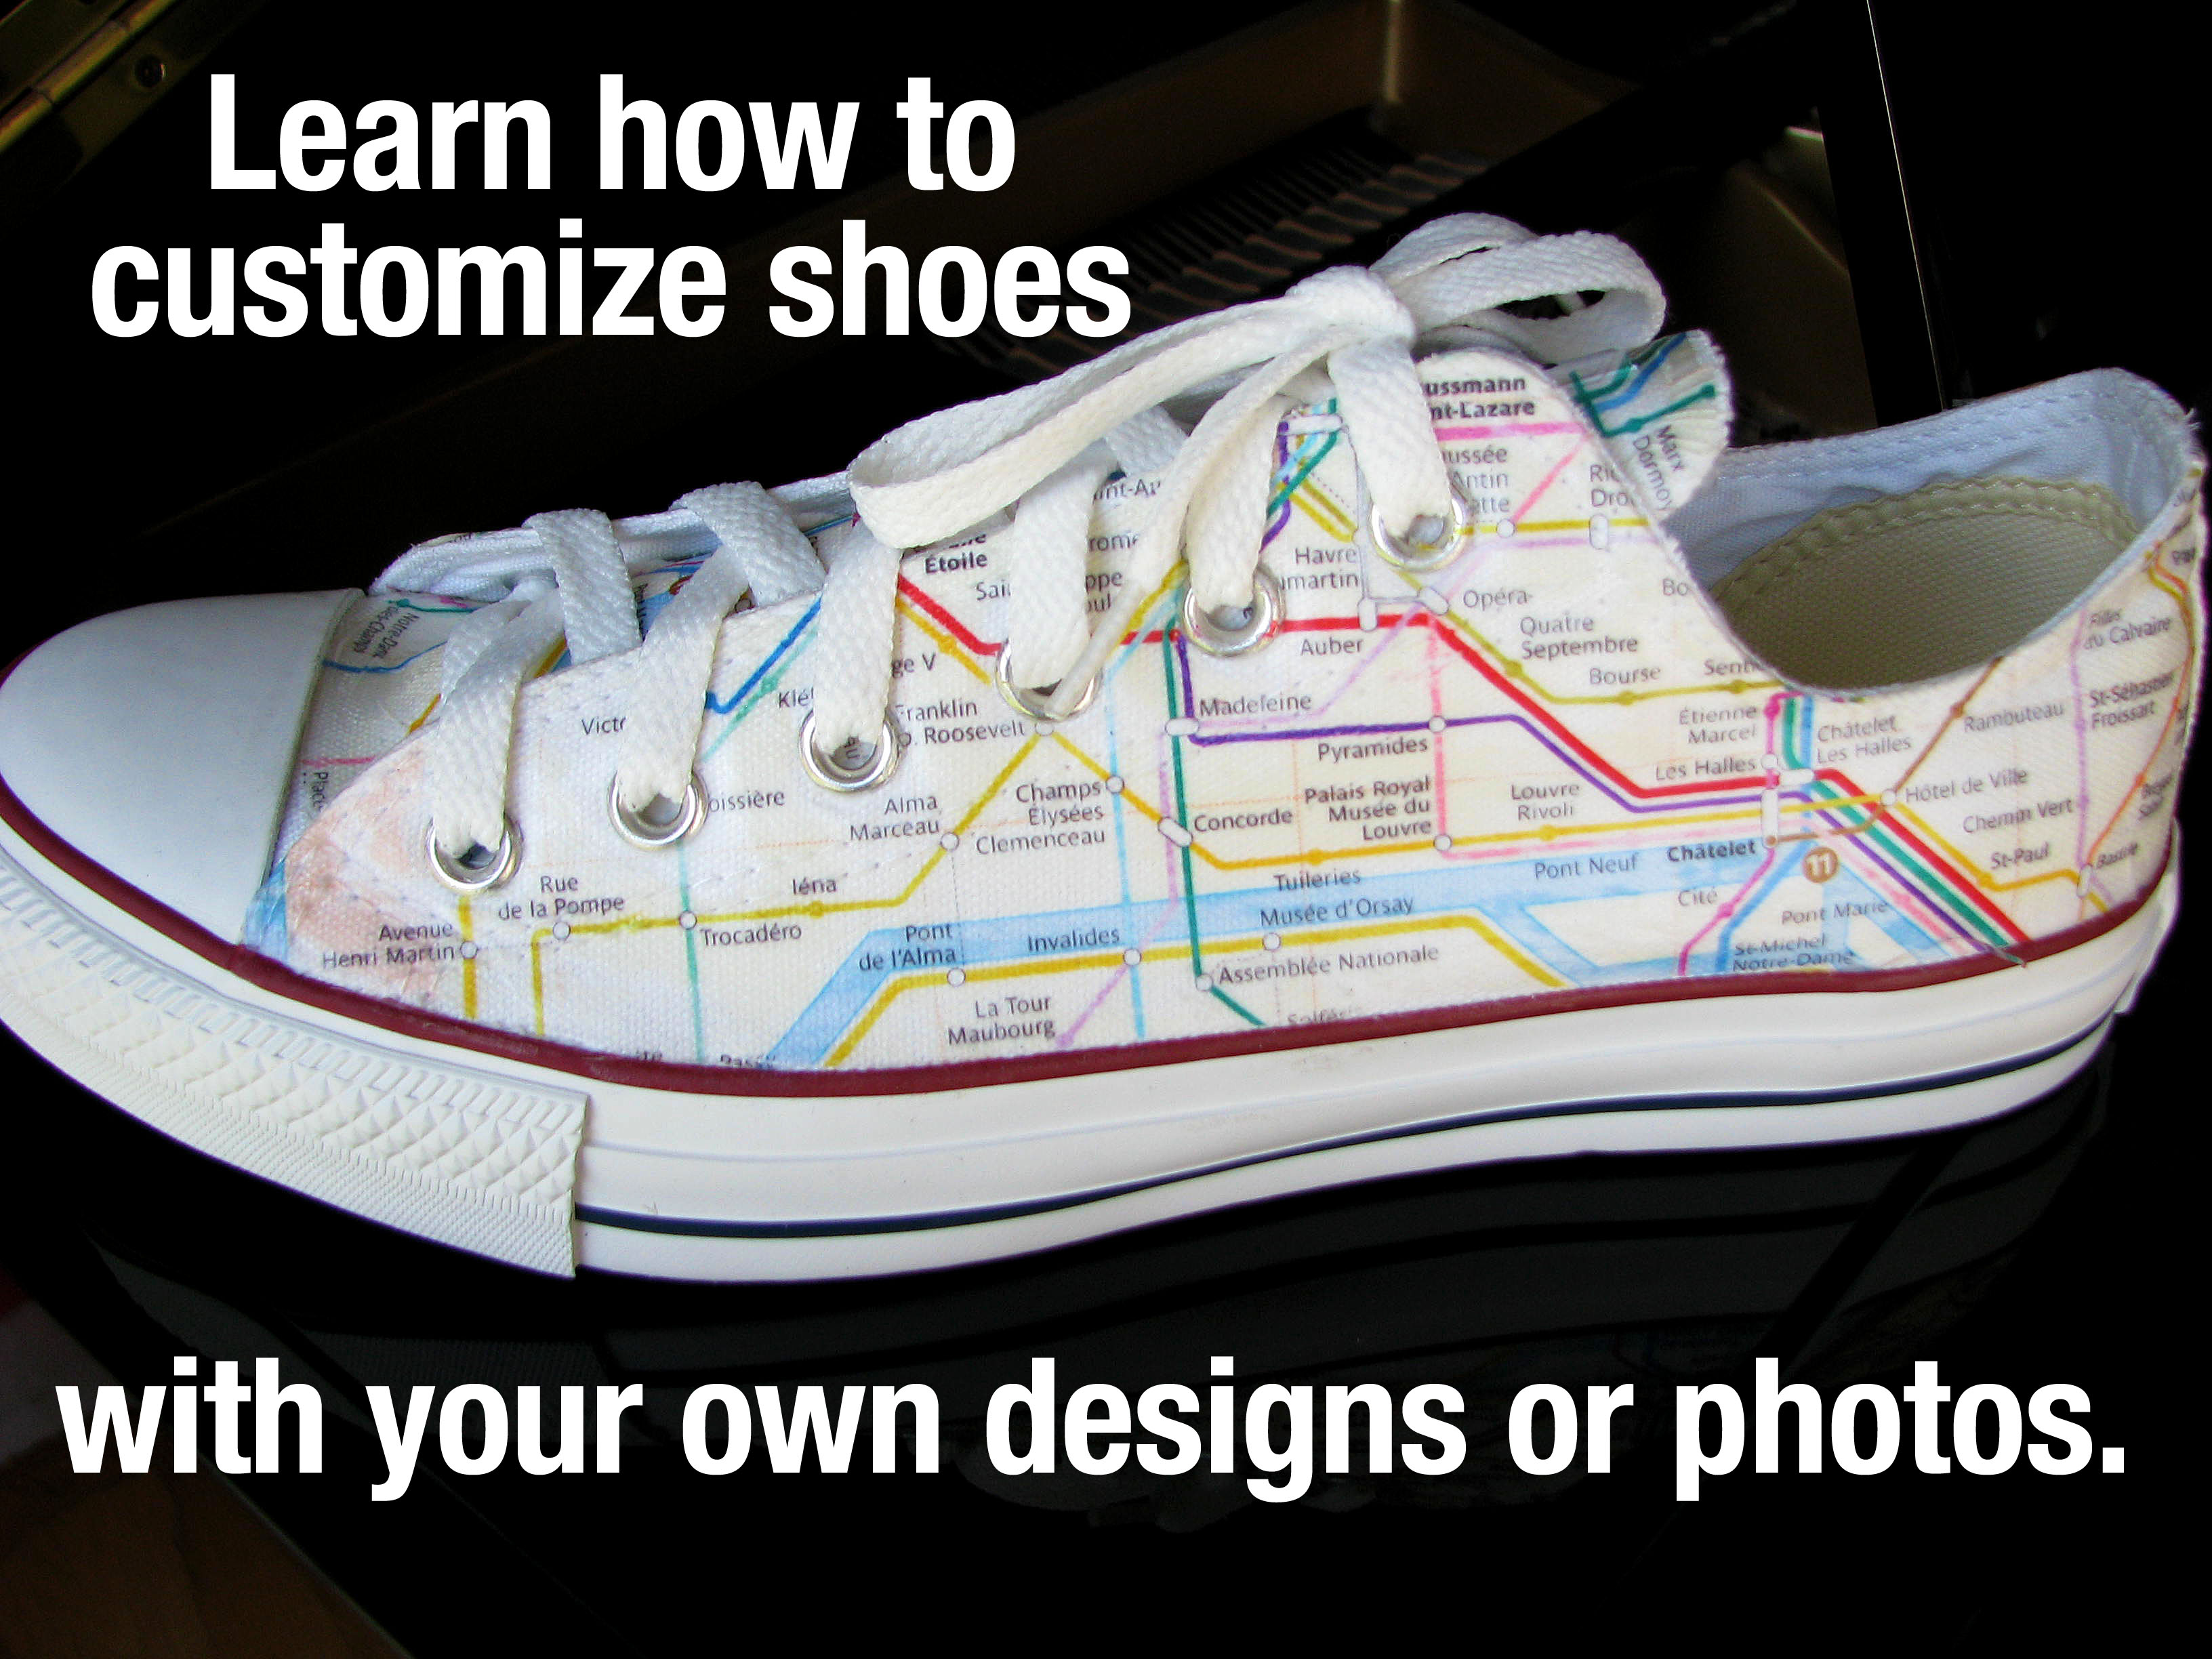 Customize Your Own Converse Shoes